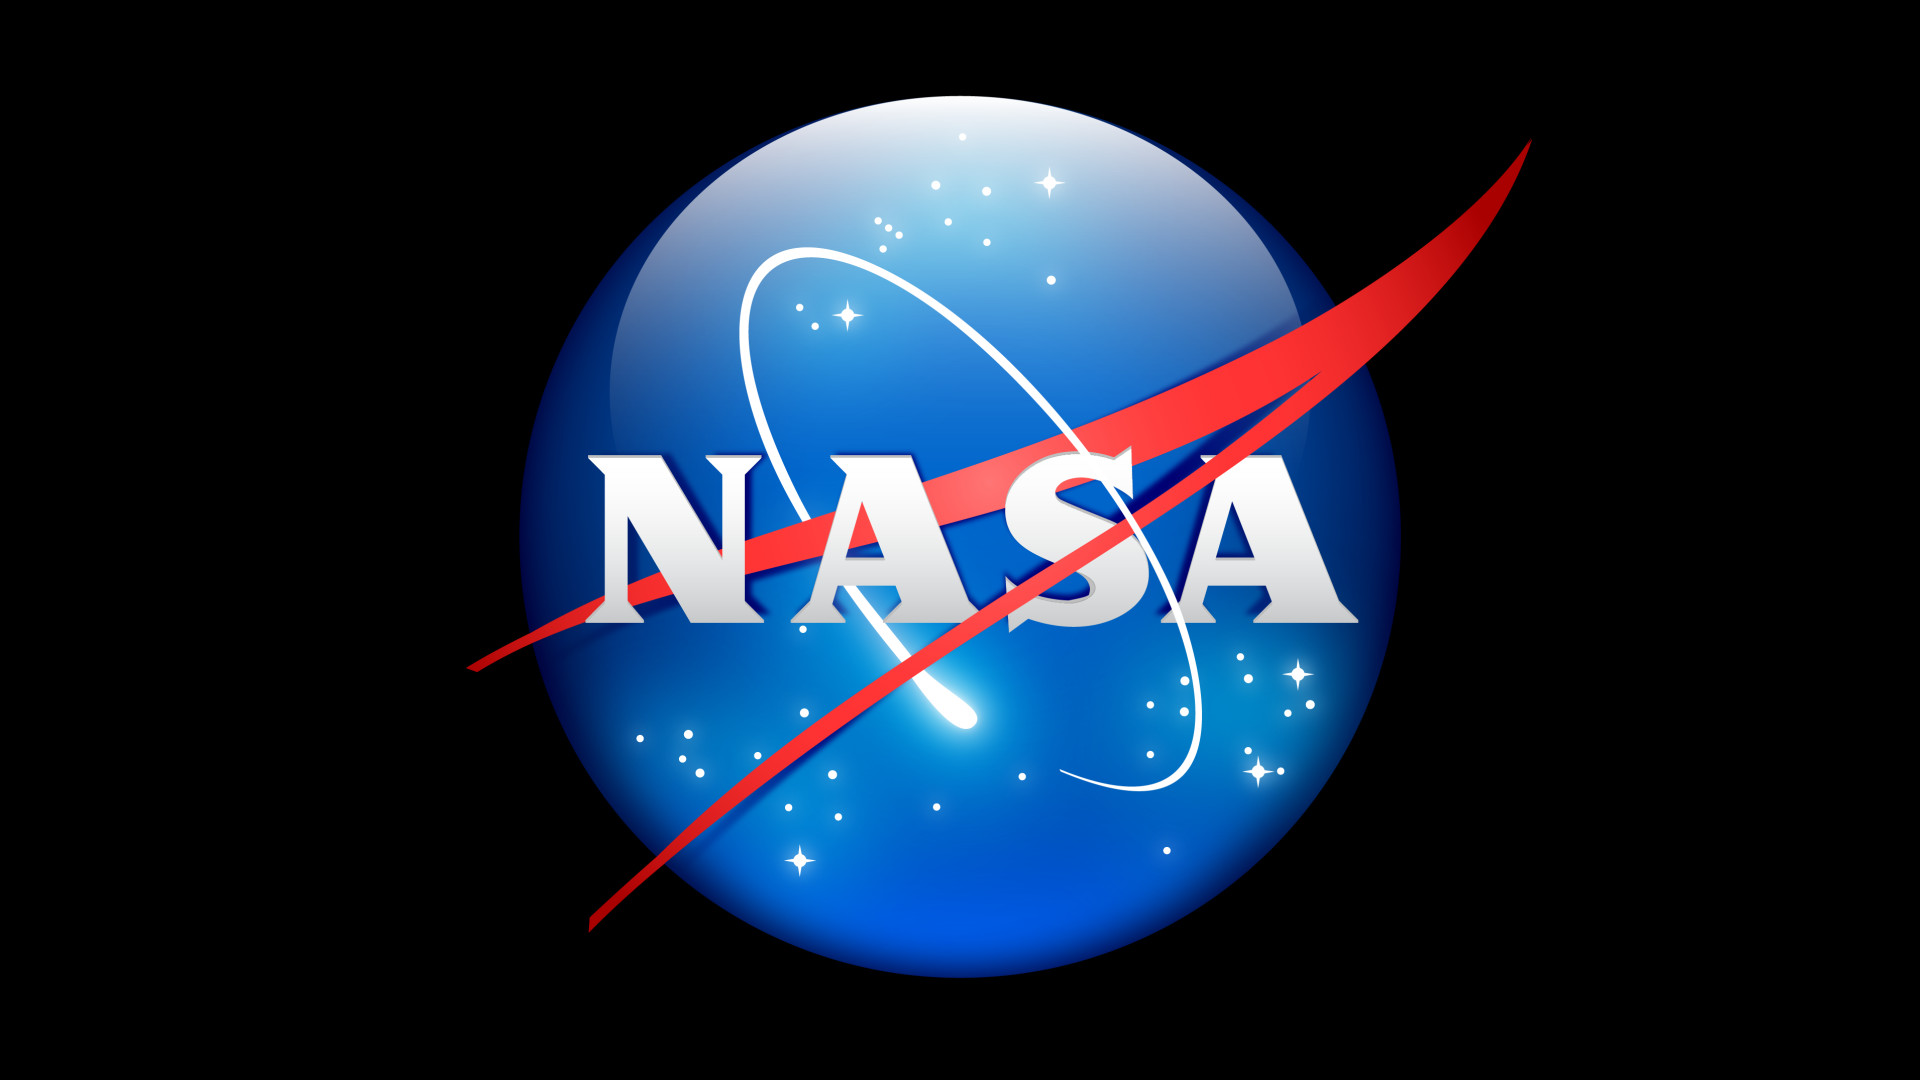 1920x1080 Nasa Logo Wallpapers - Wallpaper Cave